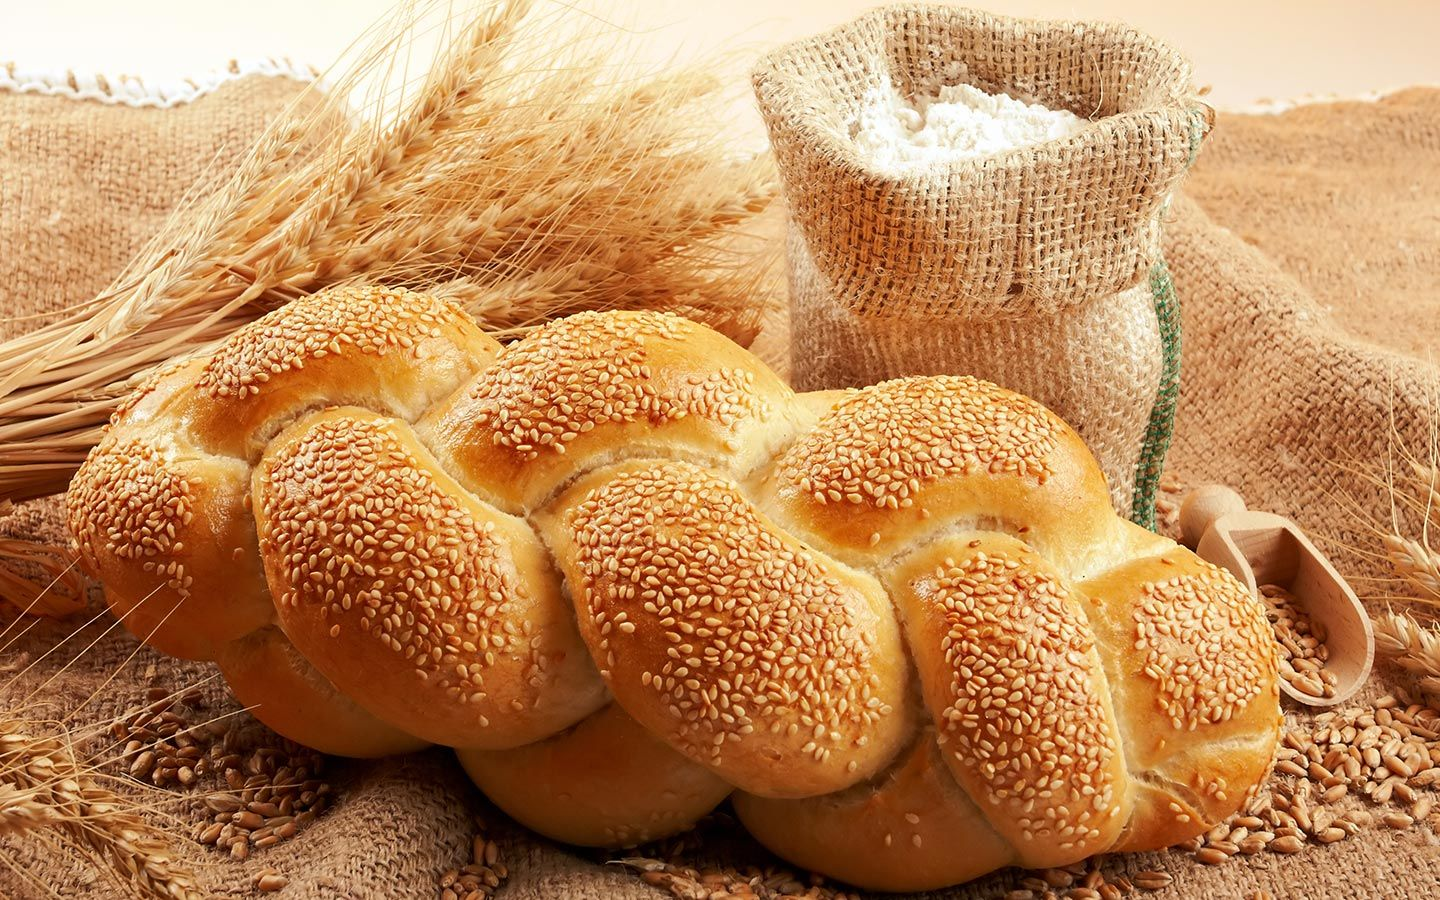 Buy Bakery Products Online from Big Basket #BigBasket #Karachi #Bakery #BigBasketPakistan #Pakistan #Online #Grocery #Sh… | Tasty bread recipe, Bread, Bread recipes